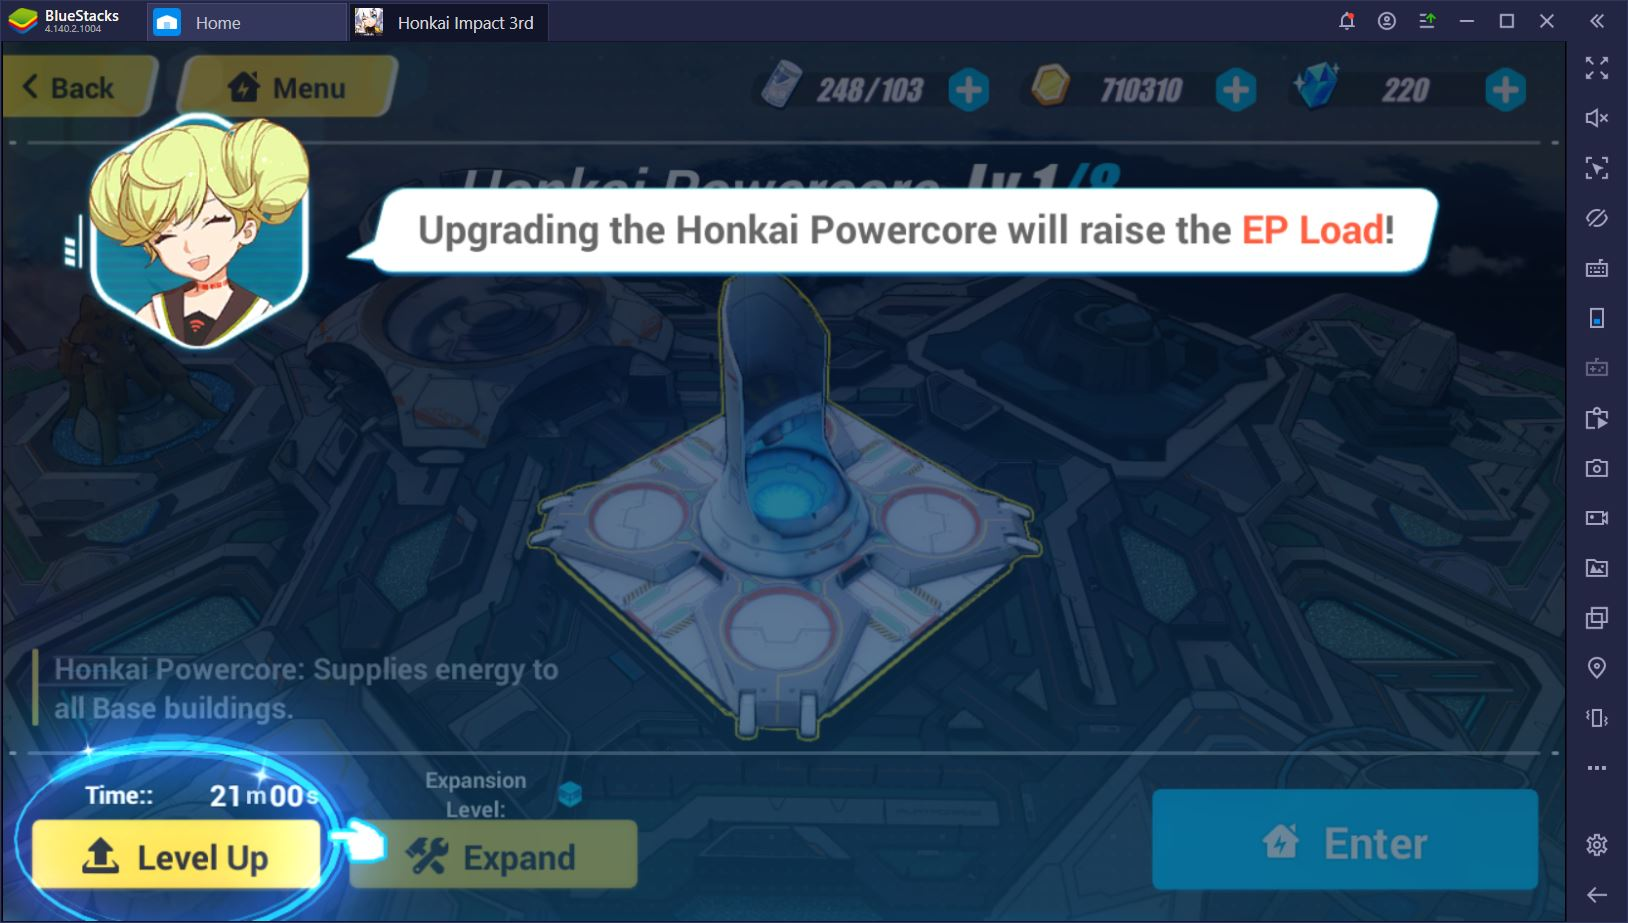 Honkai Impact 3rd on PC: How to Unlock, Navigate, and Upgrade Your Base